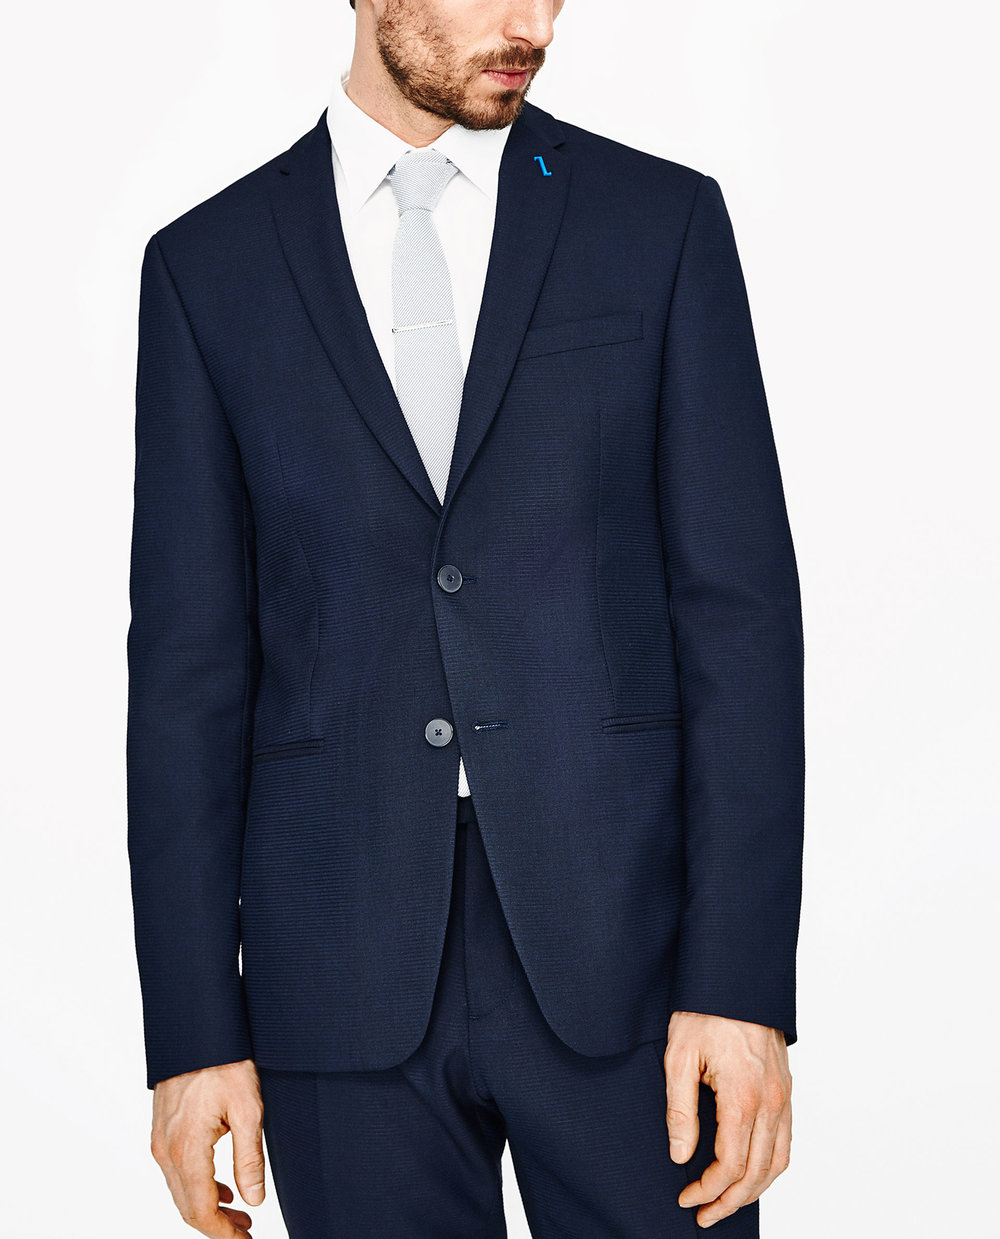 1.) $249.90  Zara - Horizontal Stripe Suit